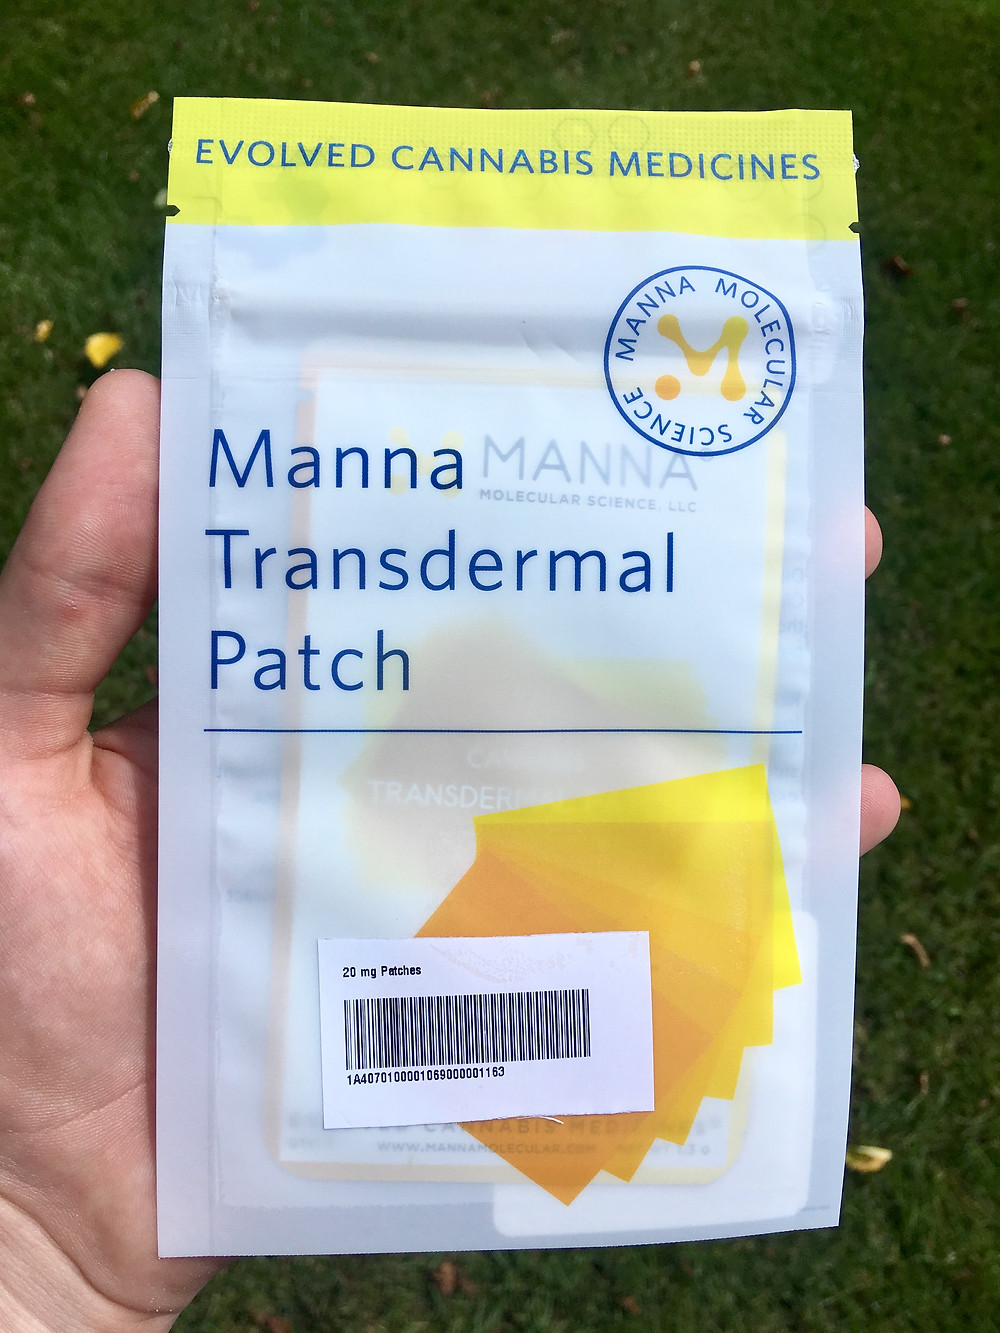 Standard Wellness partnership with Manna transdermal patches